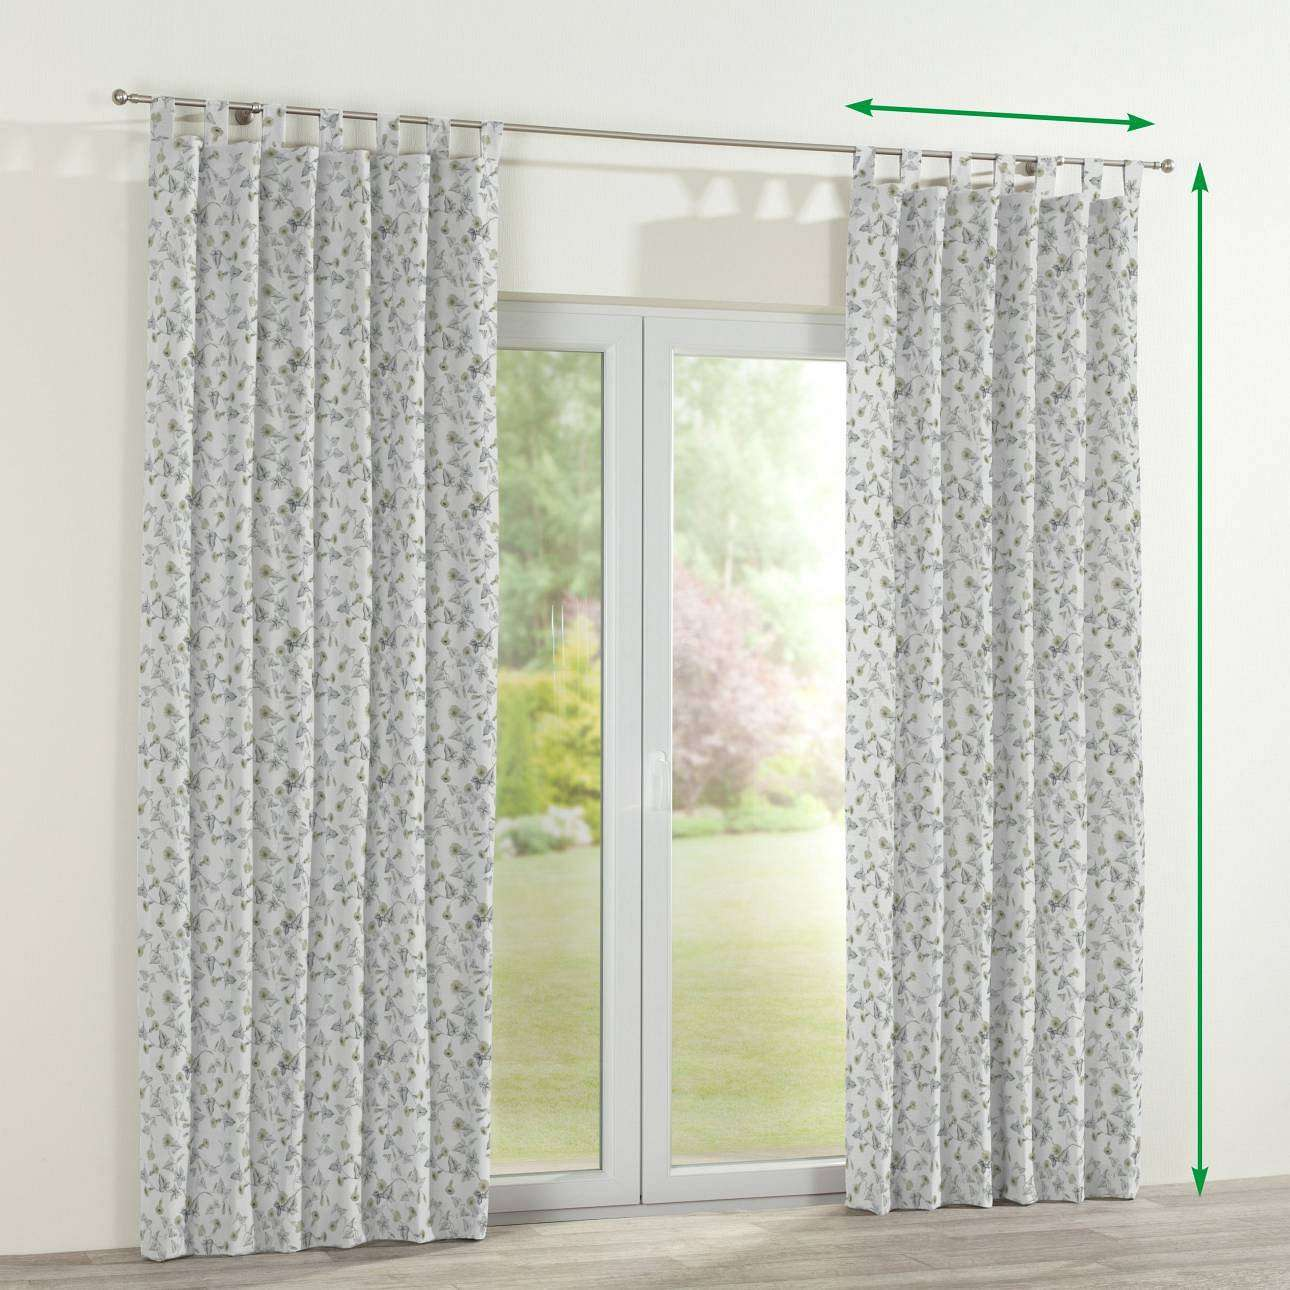 Tab top curtains in collection Mirella, fabric: 140-42